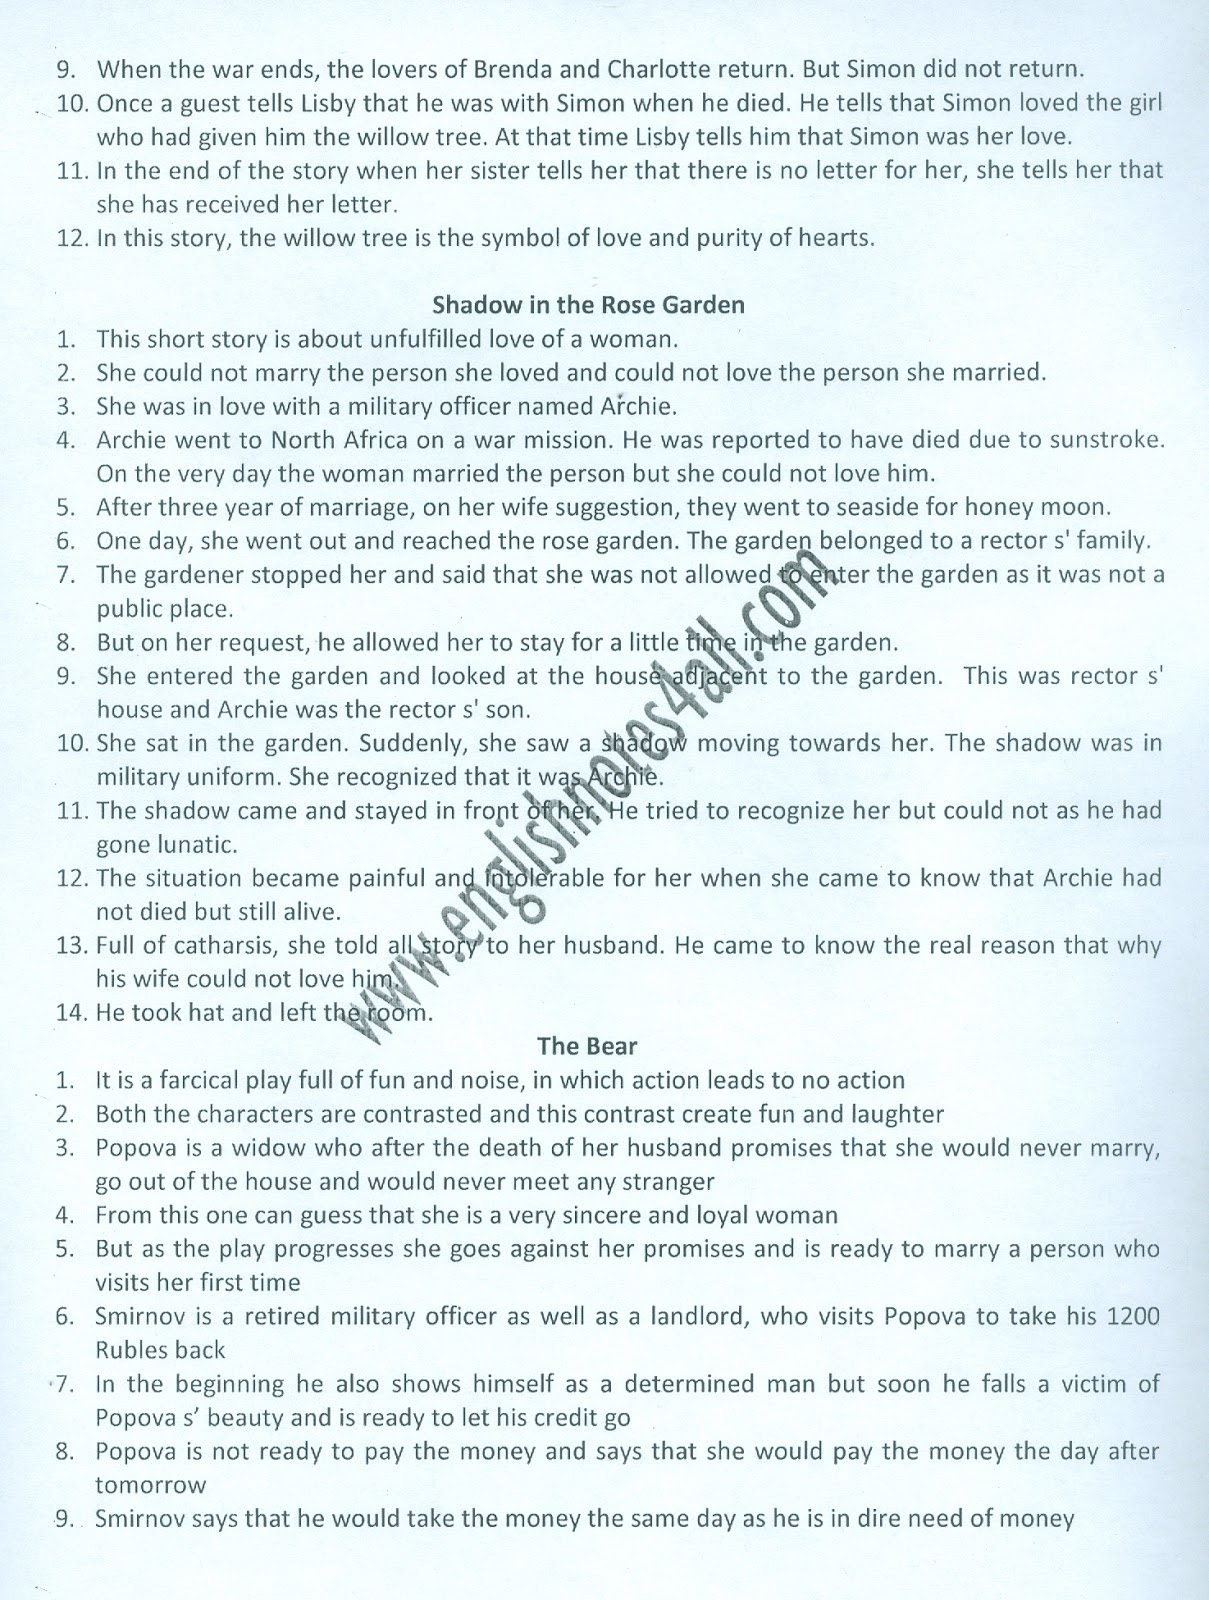 How To Write A Good English Essay Ba English Notesmodern Essaysthe Old Man And The Seashort Stories And One  Act Plays Sample English Essays also How To Write A Research Essay Thesis Ba English Notespuuosiub English Essay On Terrorism